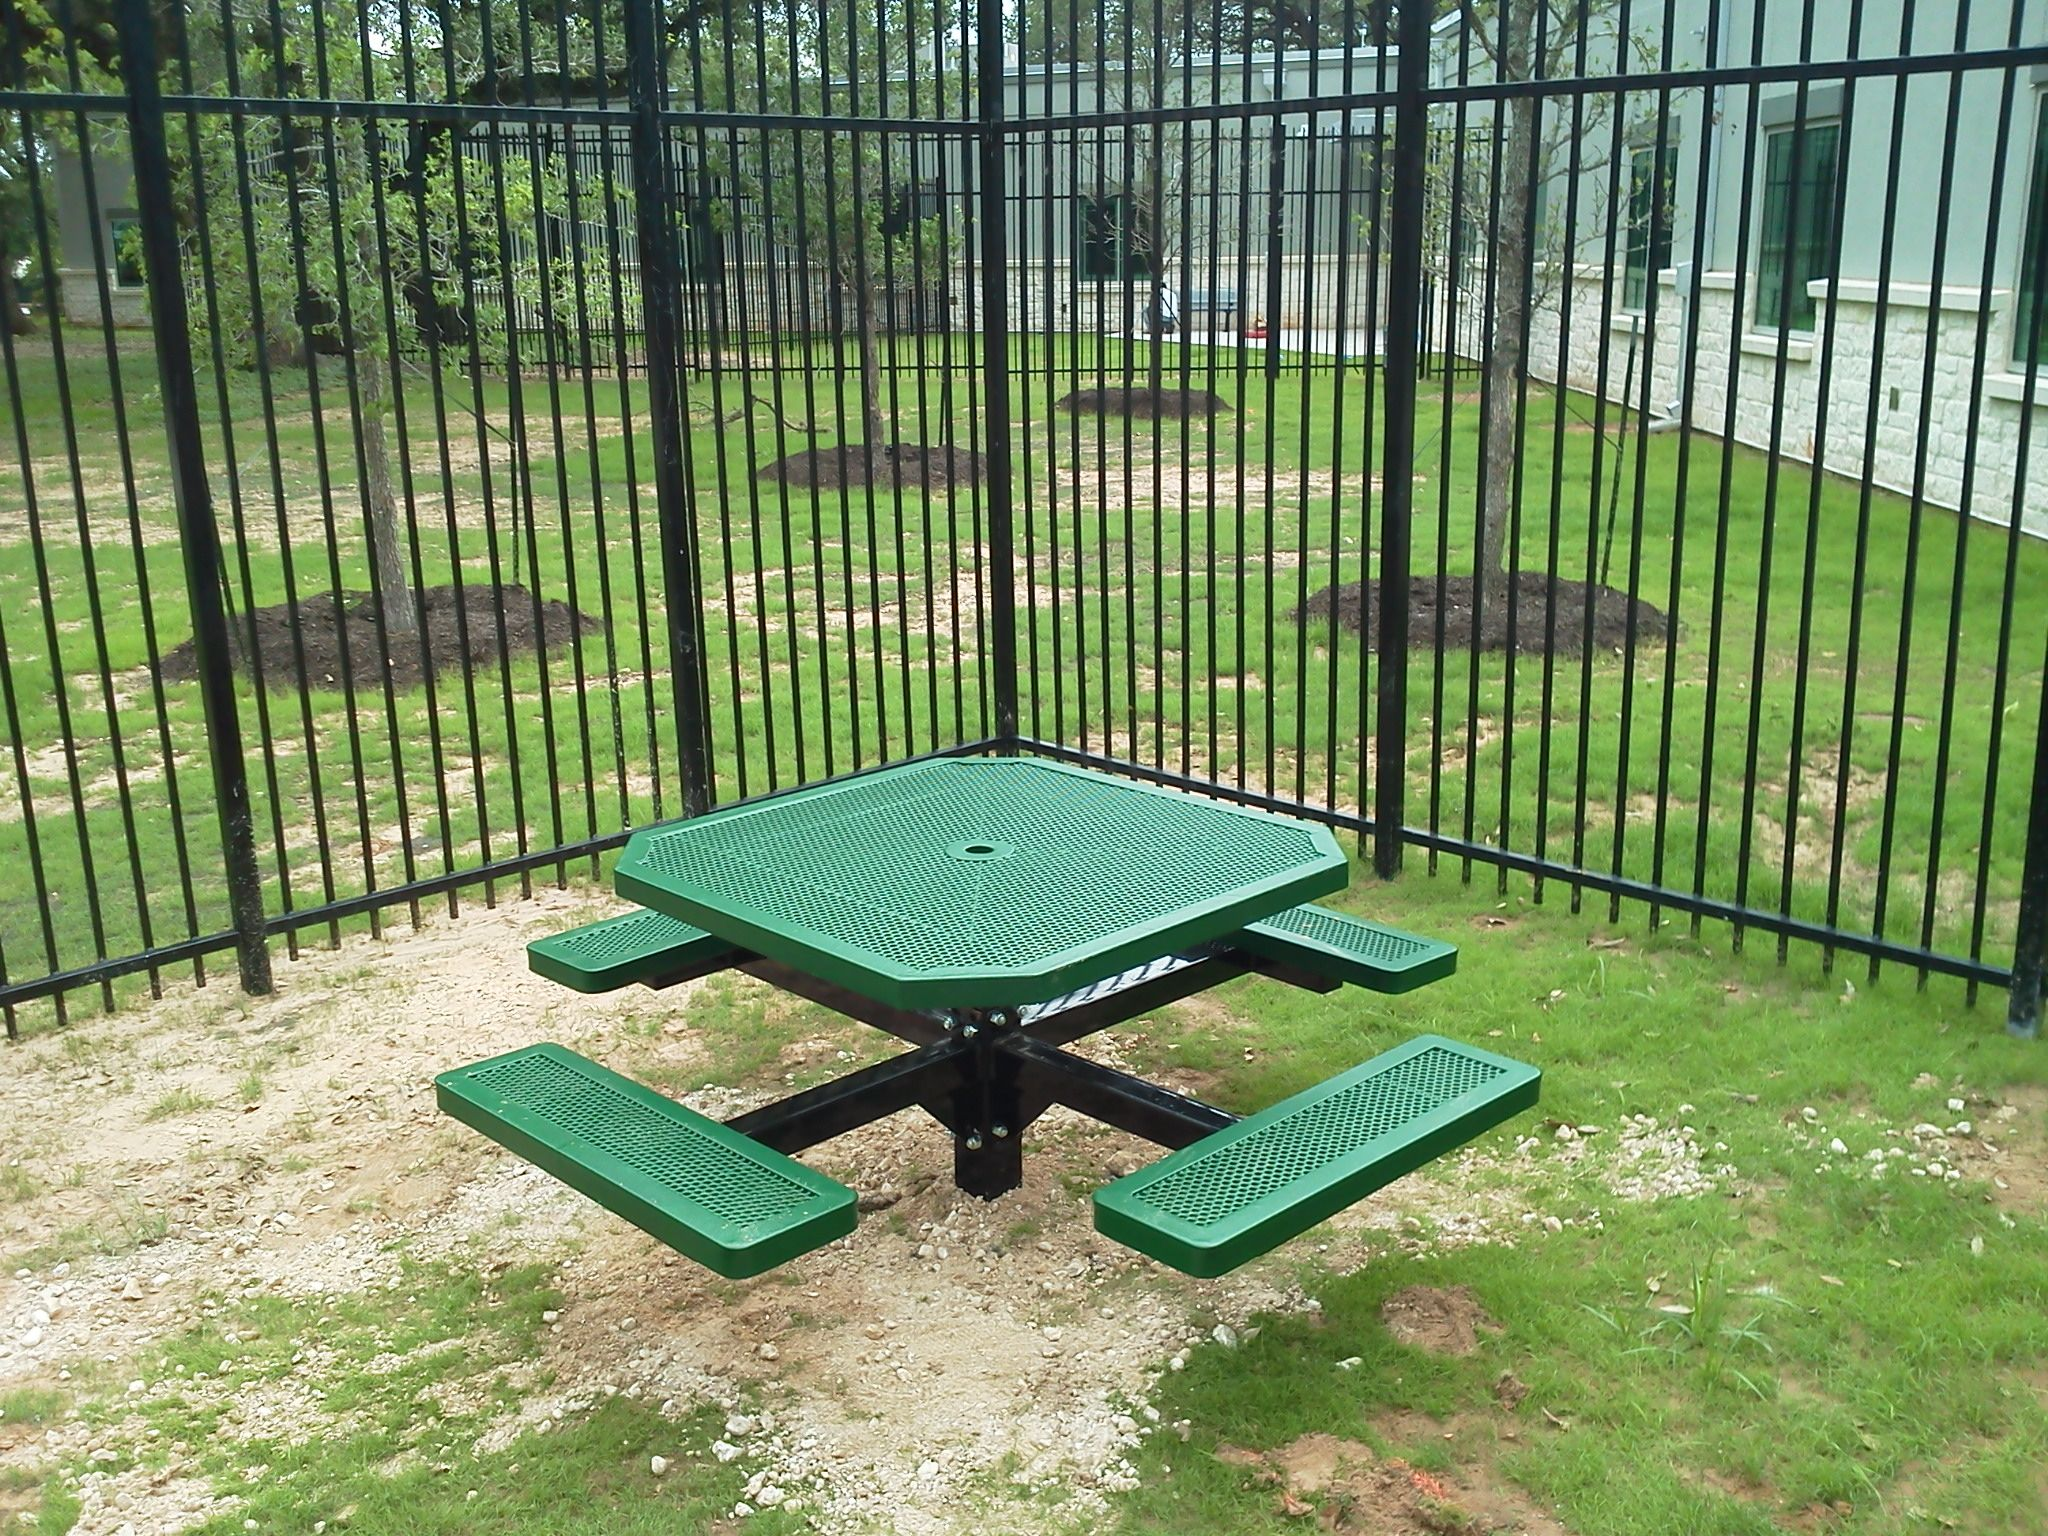 T46INNVPEDS Table from DunRite Playgrounds. http://www.dunriteplaygrounds.com